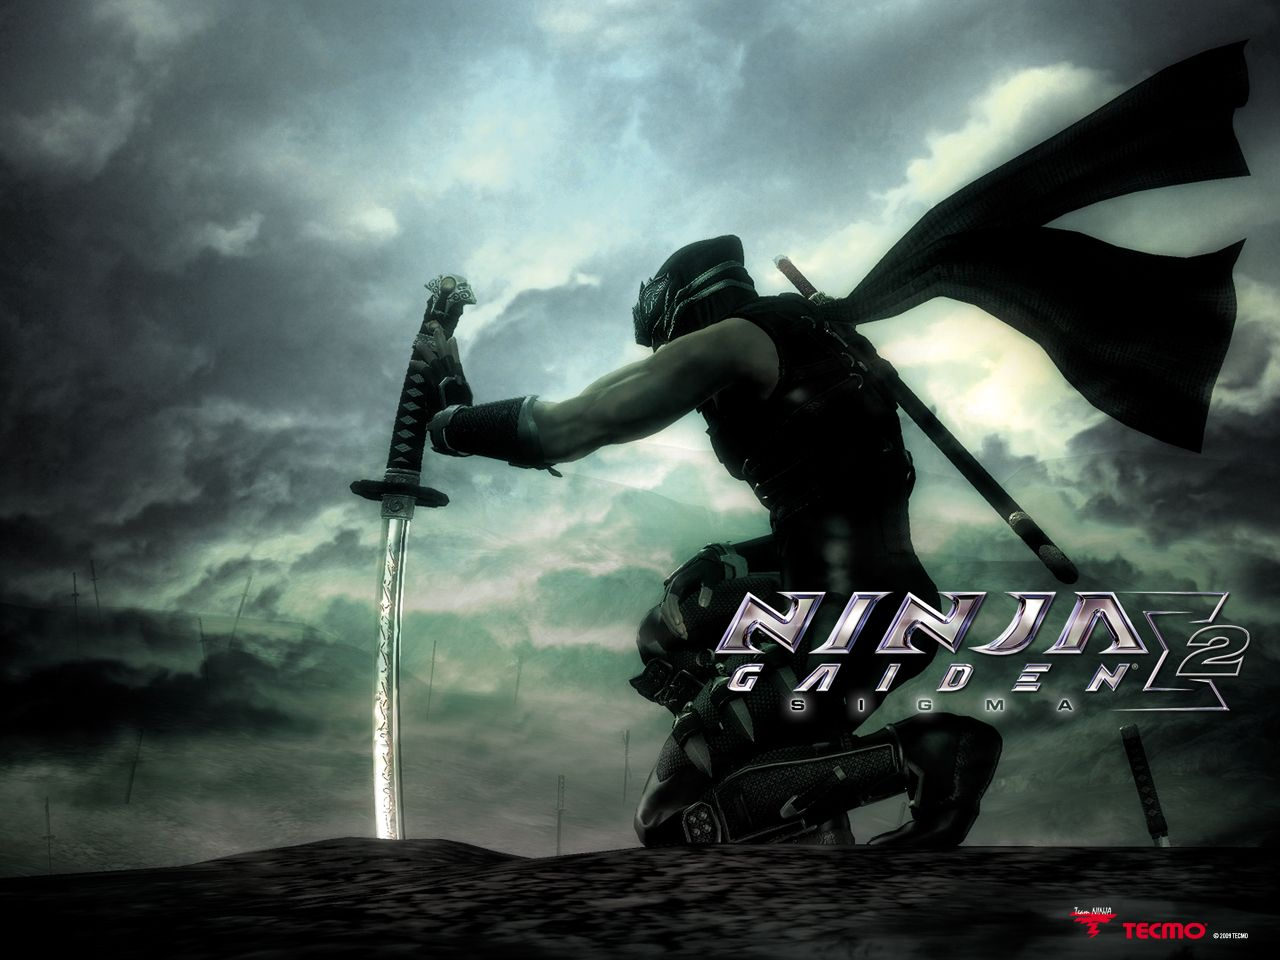 Ninja Gaiden Sigma 2 Wallpapers - Top Free Ninja Gaiden Sigma 2 Backgrounds  - WallpaperAccess